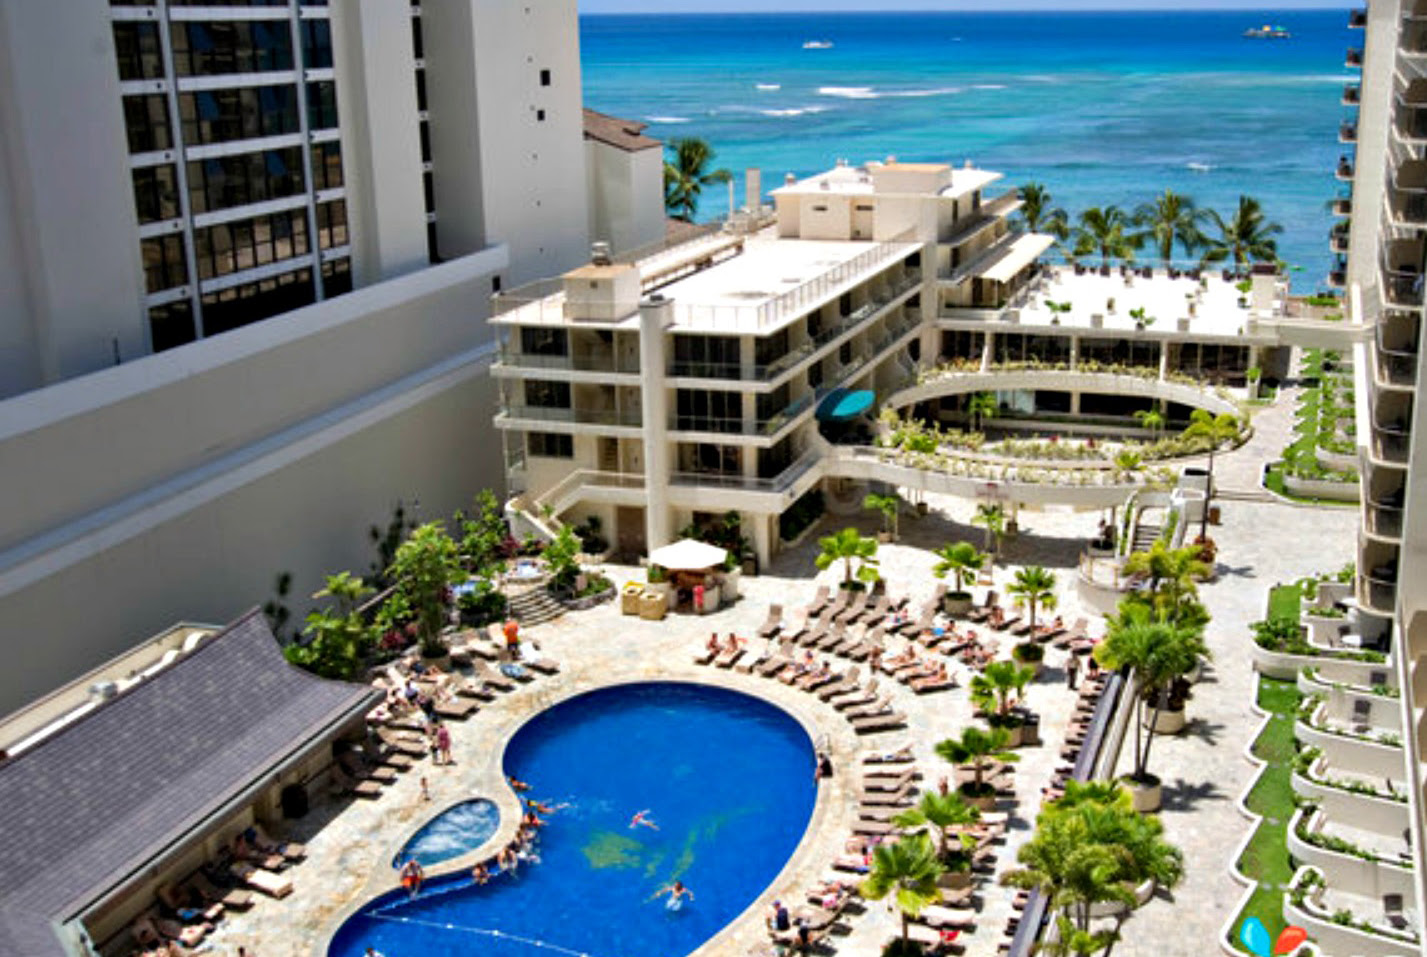 HAWAII VACATIONS ALL INCLUSIVE HAWAII VACATION PACKAGES TO ...